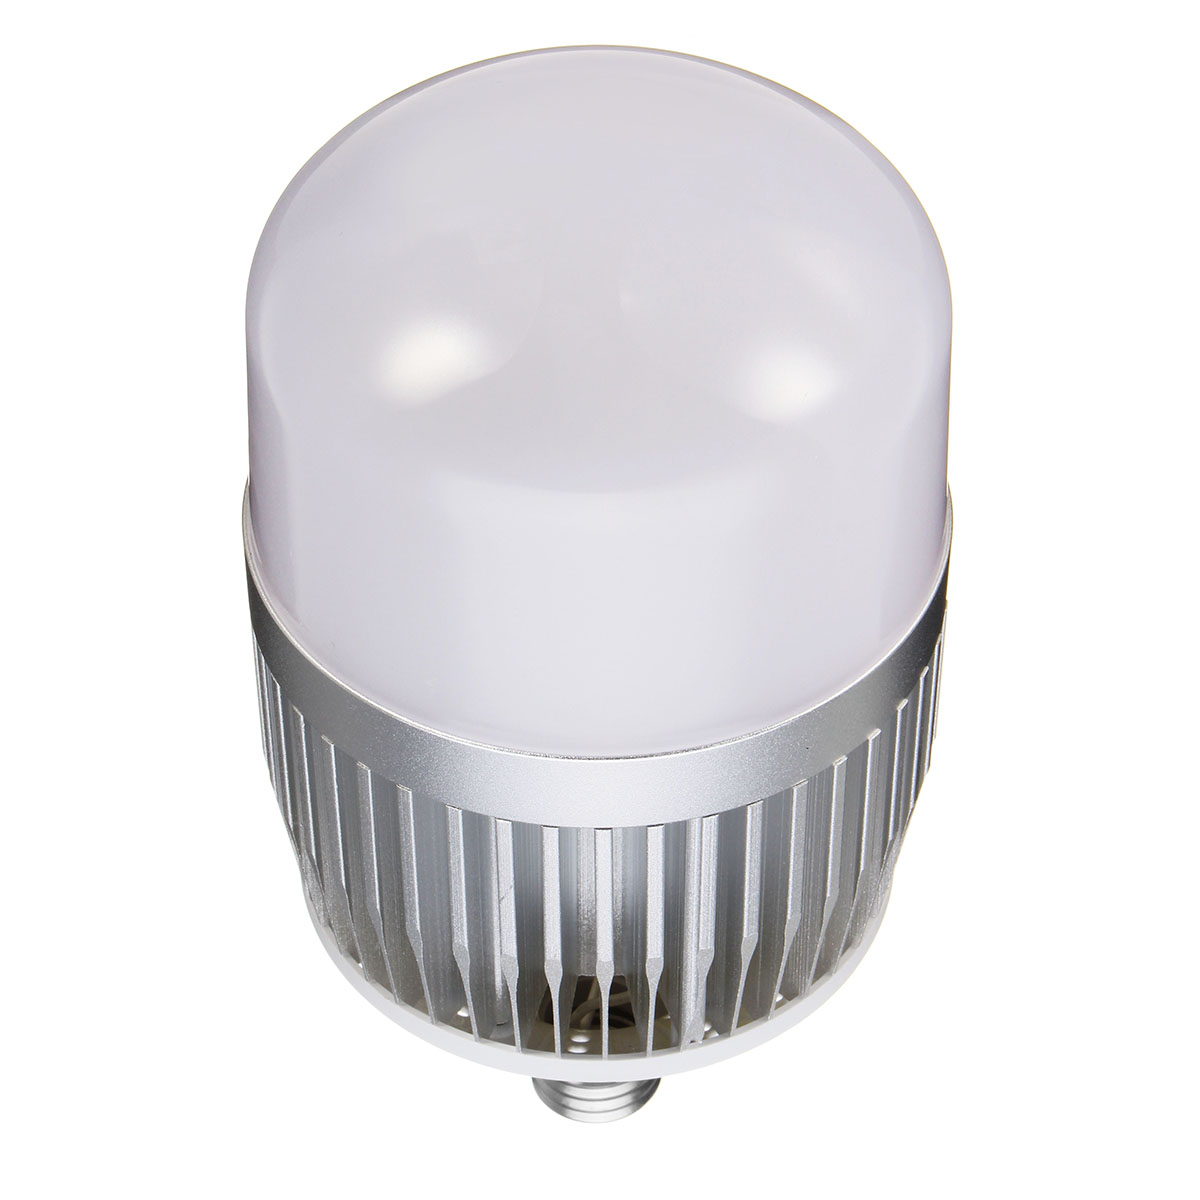 E27 80W 100LM/W SMD3030 Warm White Pure White LED Light Bulb for Factory Industry AC85-265V